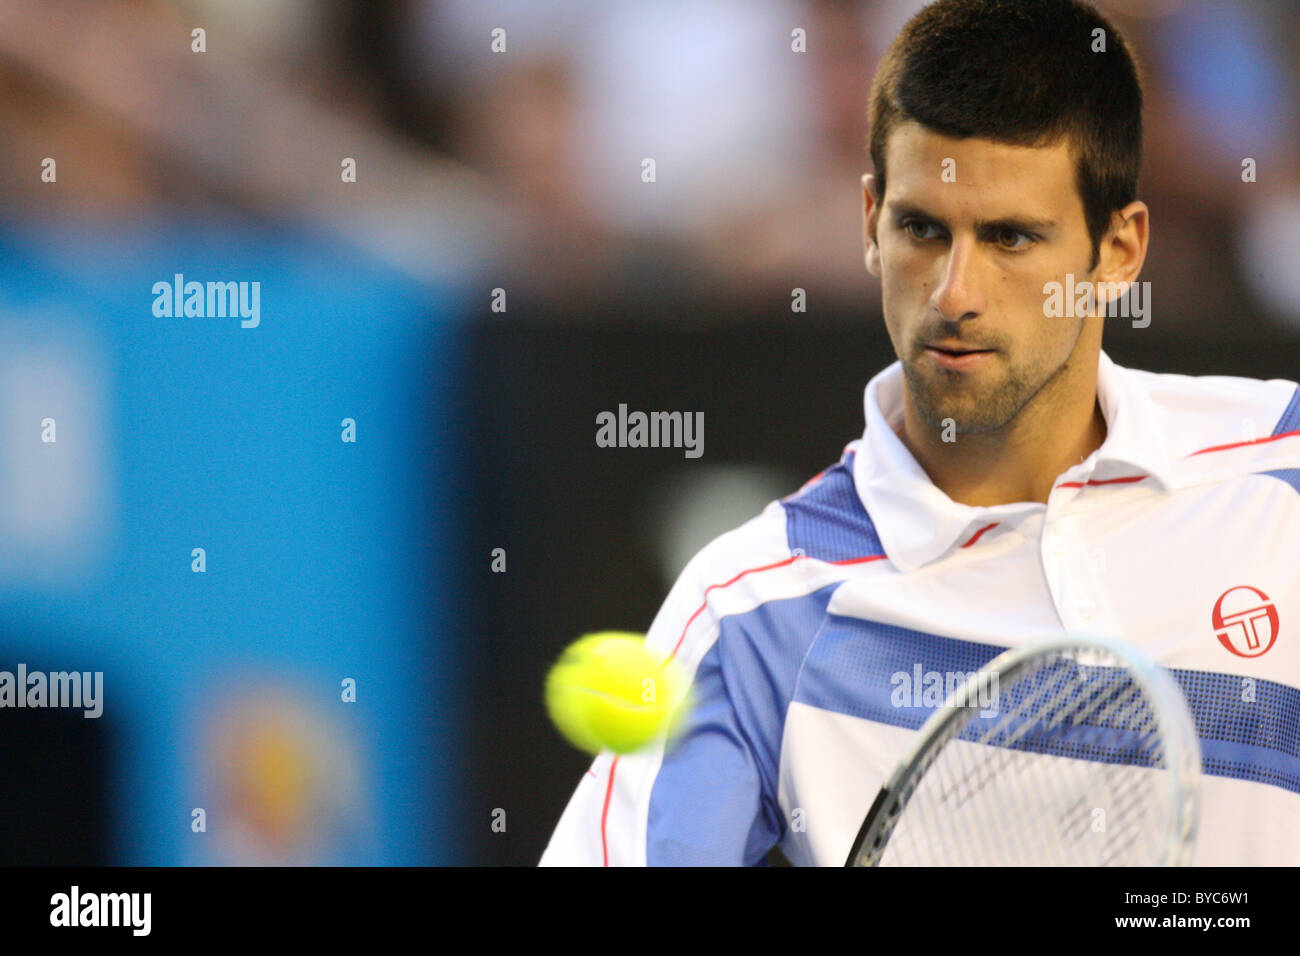 Novak Djokovic playing Andy Murray in the Mens Singles Final of the Australian Open Tennis in Melbourne, January - Stock Image